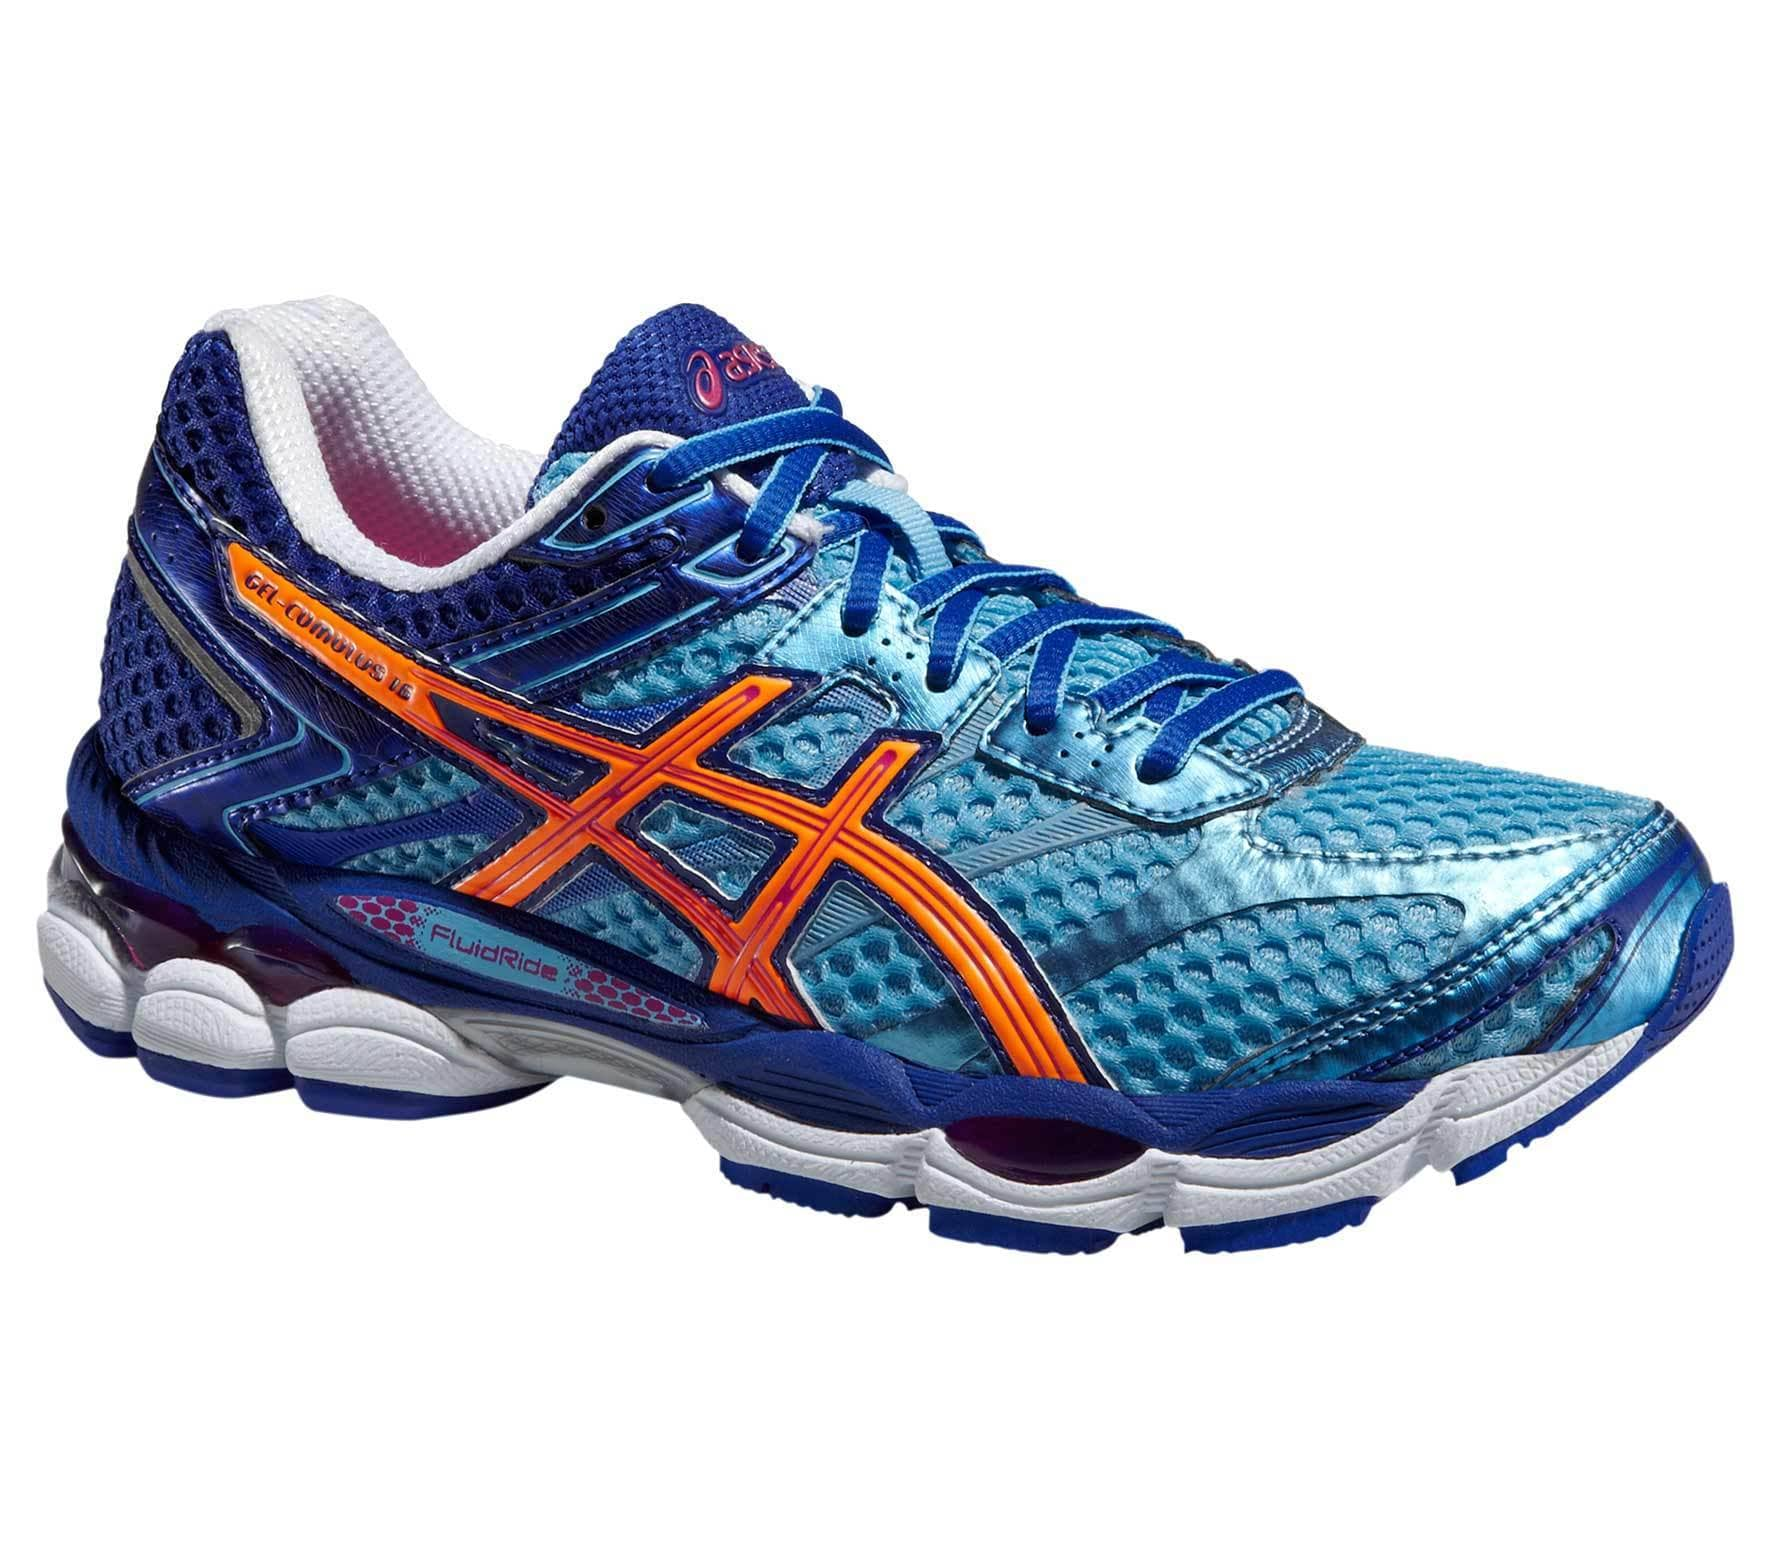 ASICS Gel-Cumulus 16 women's running shoes Damen